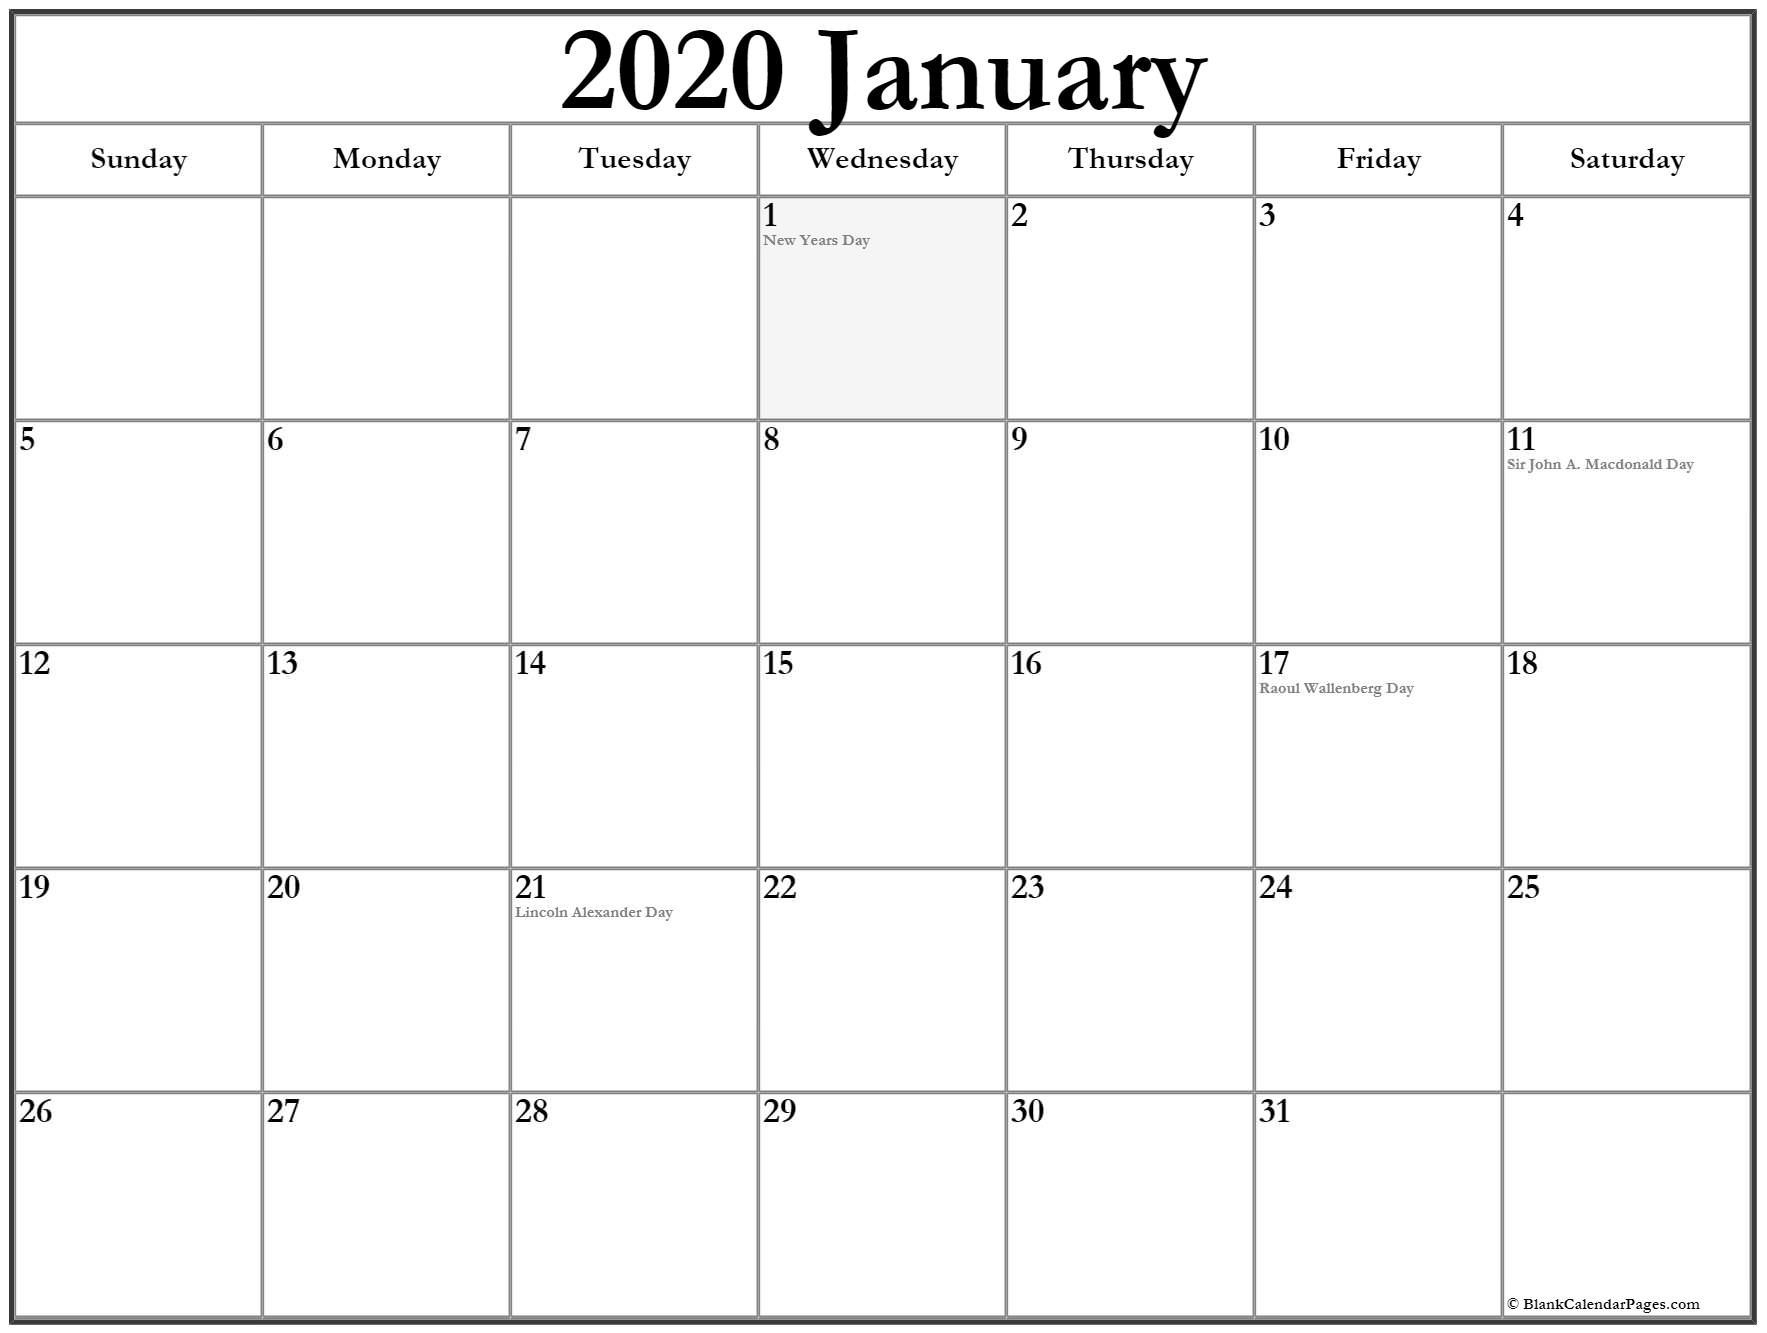 January 2020 Calendar With Holidays | Holiday Calendar